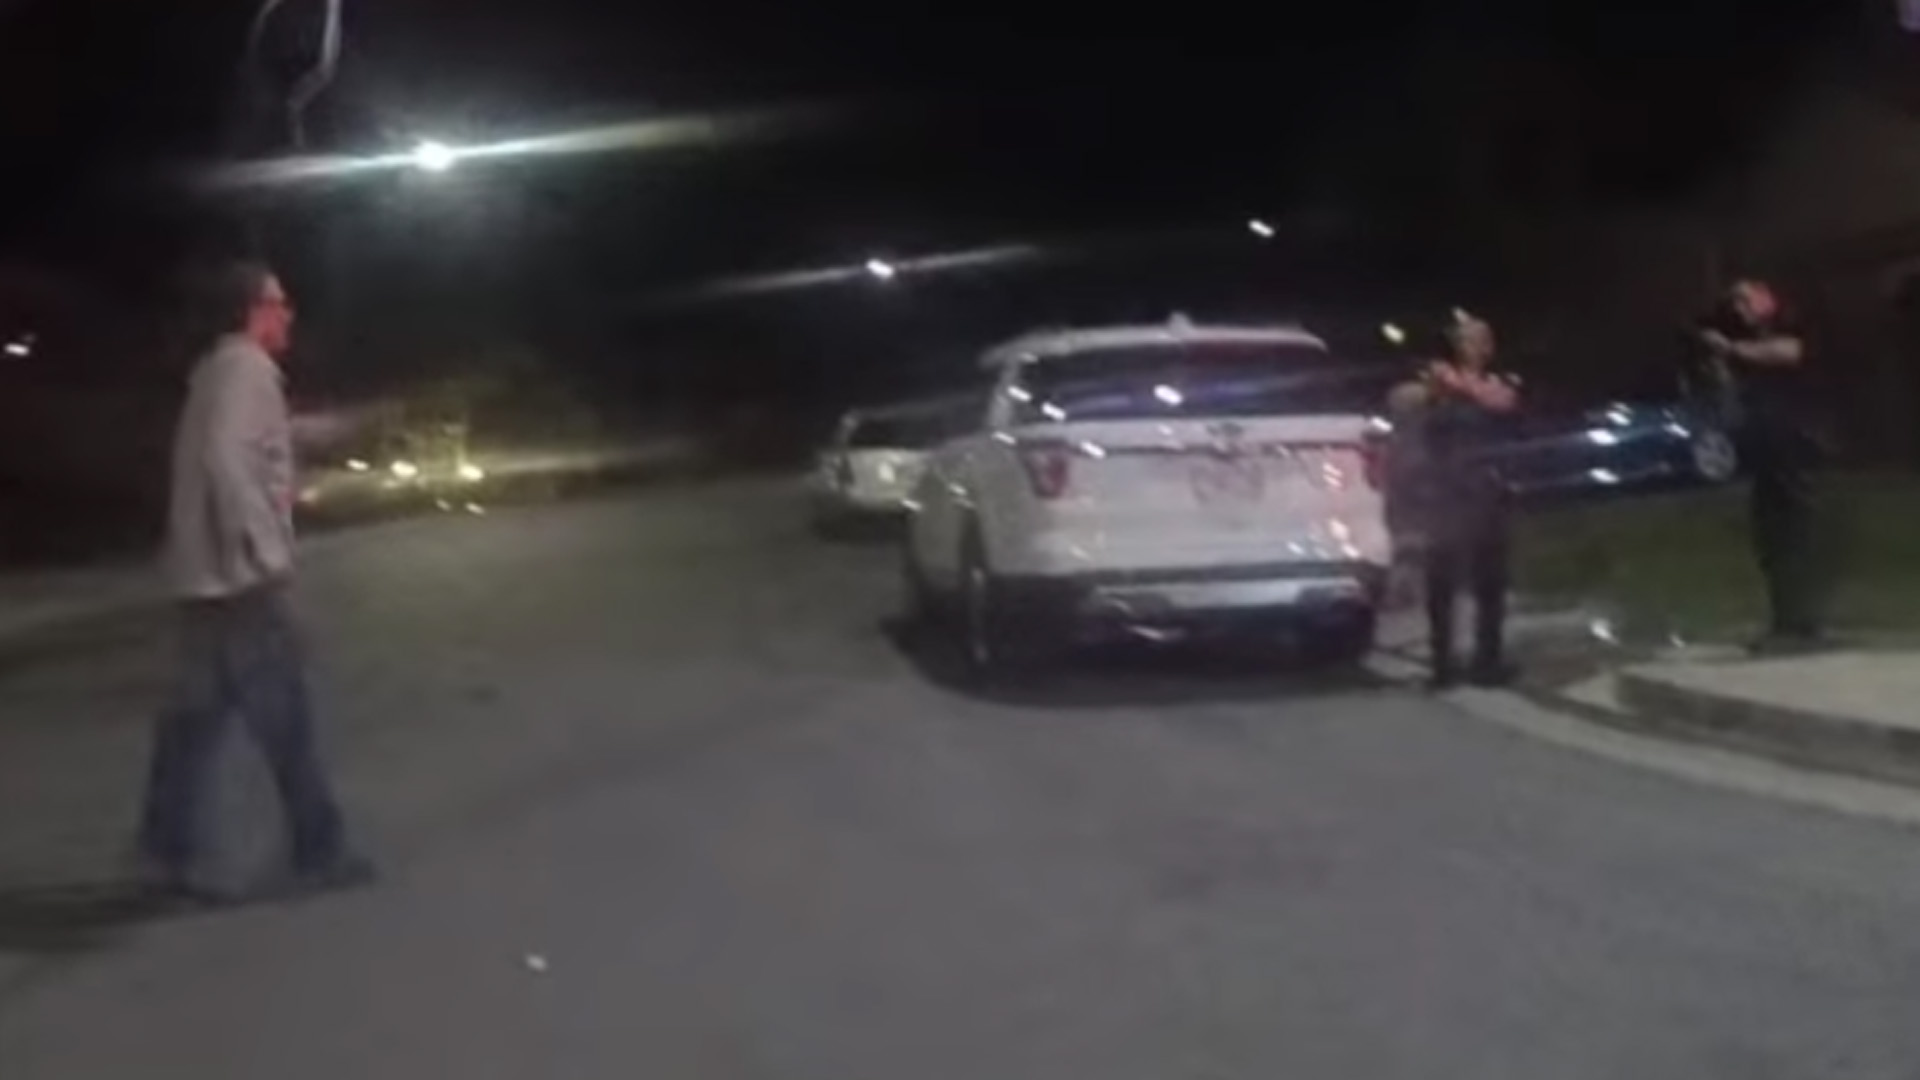 Los Angeles police released body camera footage of an officer-involved shooting that happened in Porter Ranch on Aug. 5, 2018.